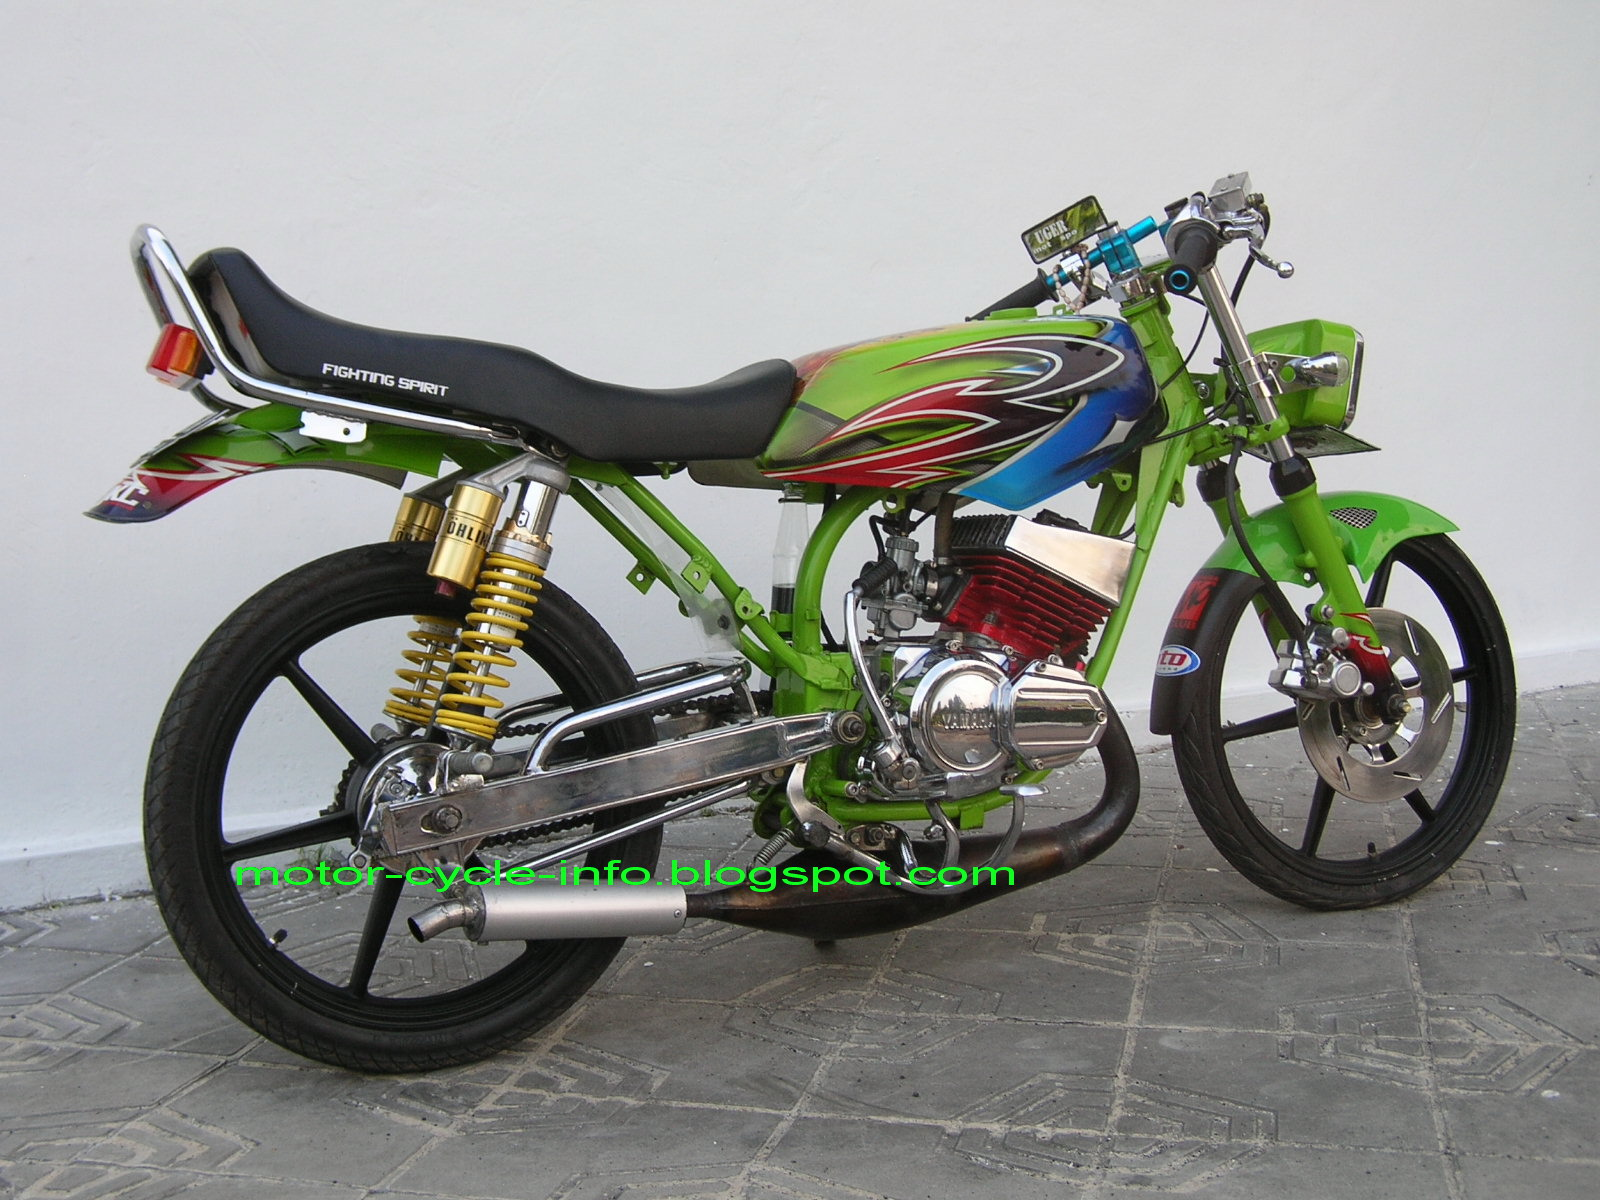 foto gallery luxury motor cycle of yamaha rx king, streetfighter t title=